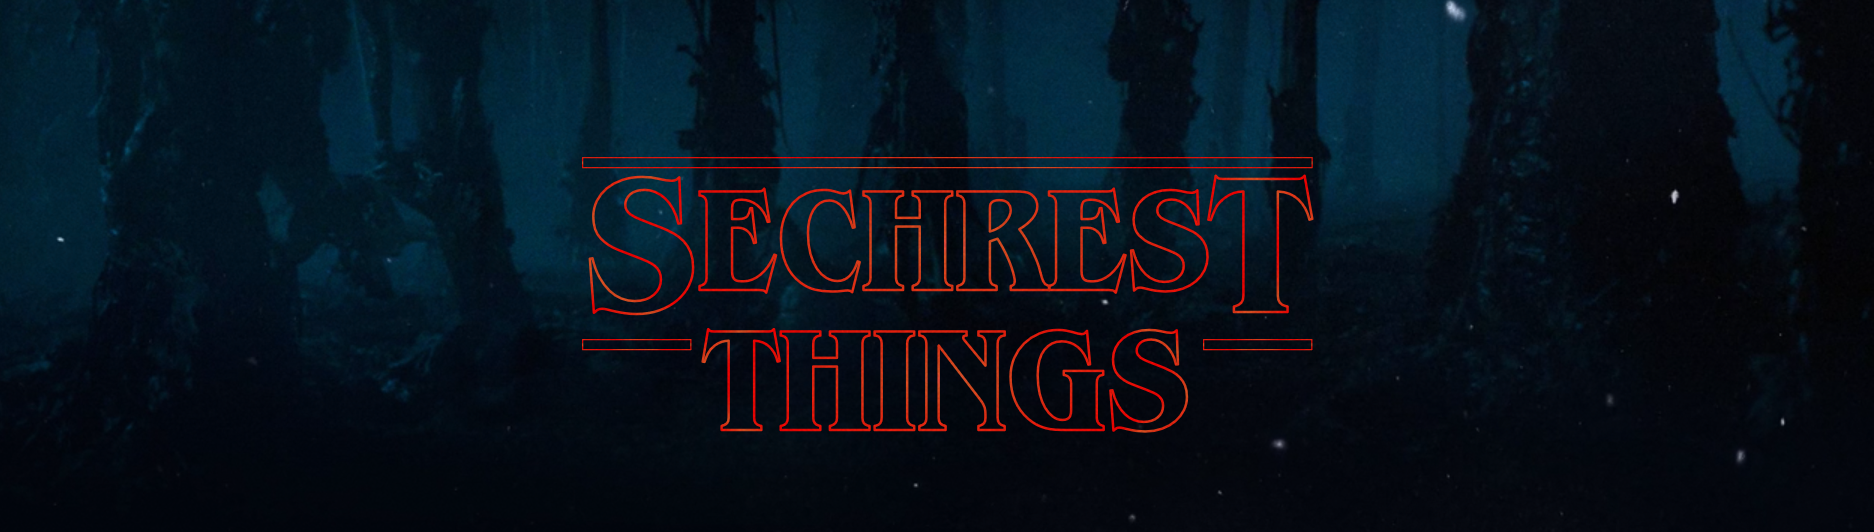 SECHREST THINGS